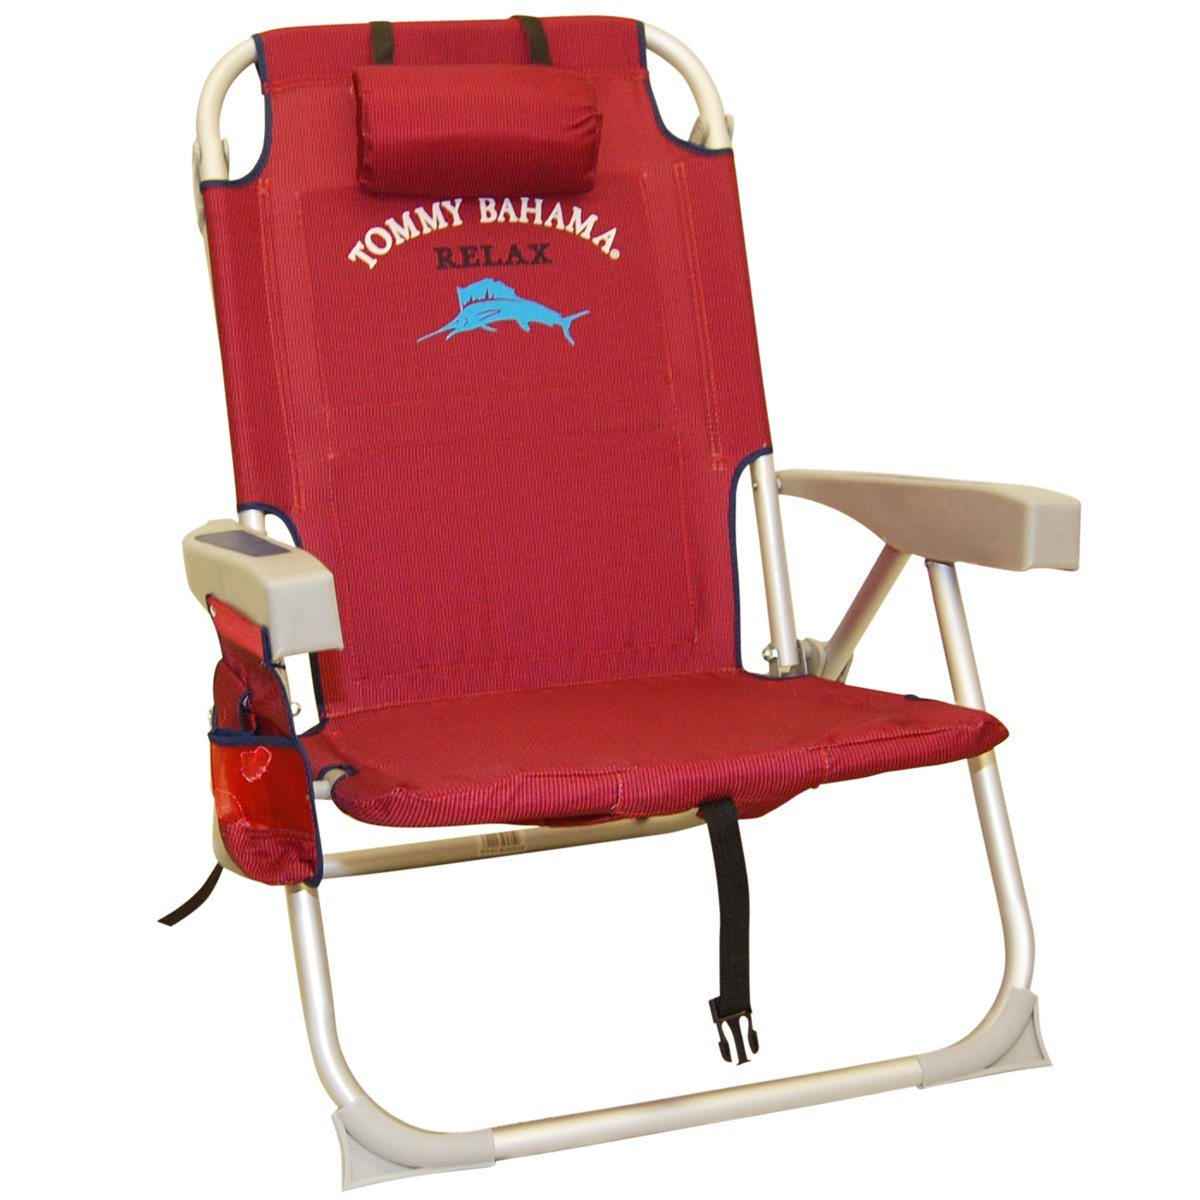 2 Tommy Bahama Red Backpack Cooler Chairs